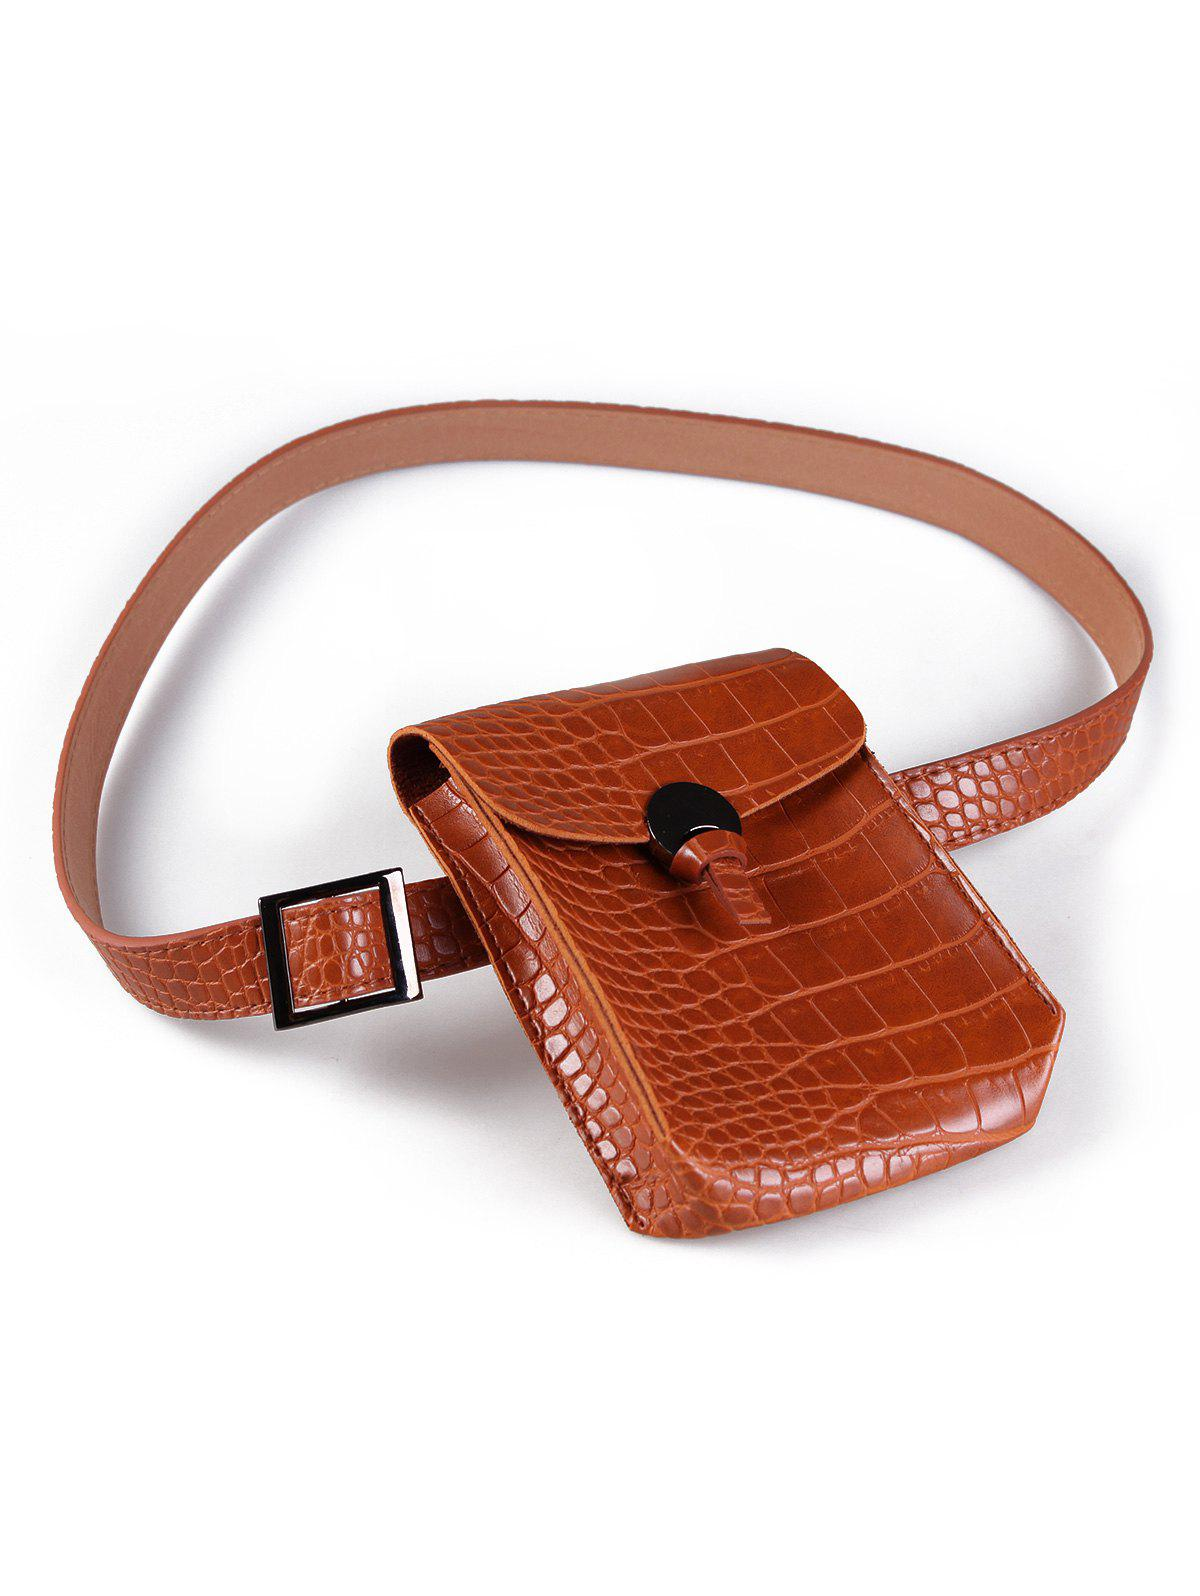 Vintage Funny Bag Crocodile Faux Leather Waist Belt - ORANGE SALMON